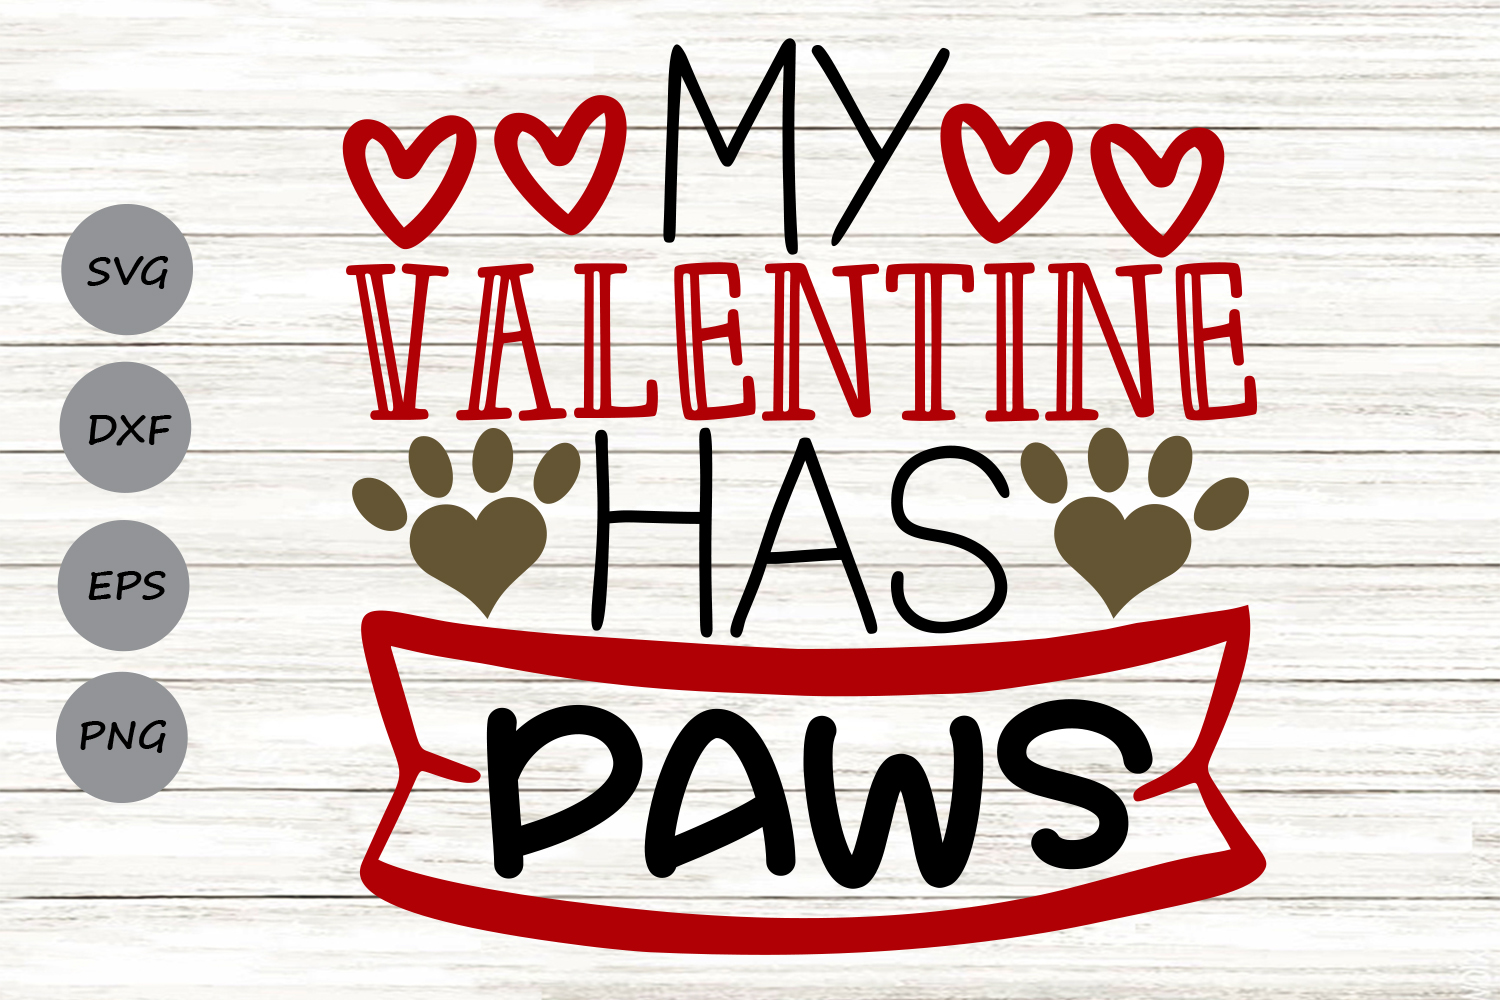 Download Free My Valentine Has Paws Graphic By Cosmosfineart Creative Fabrica for Cricut Explore, Silhouette and other cutting machines.